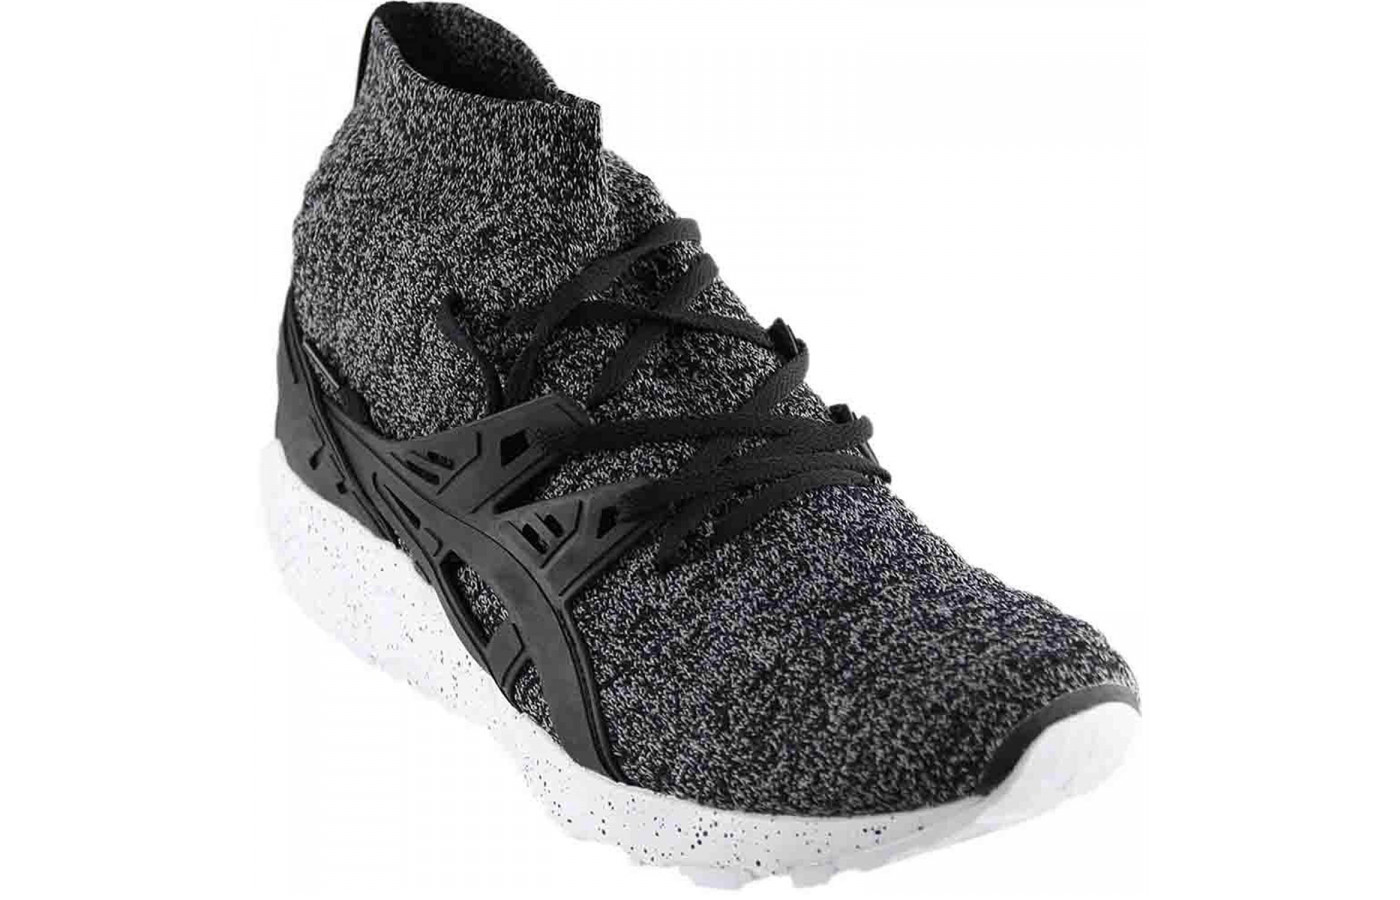 fb597854f262 The Asics Gel Kayano Trainer Knit MT offers a sock-like fit ...